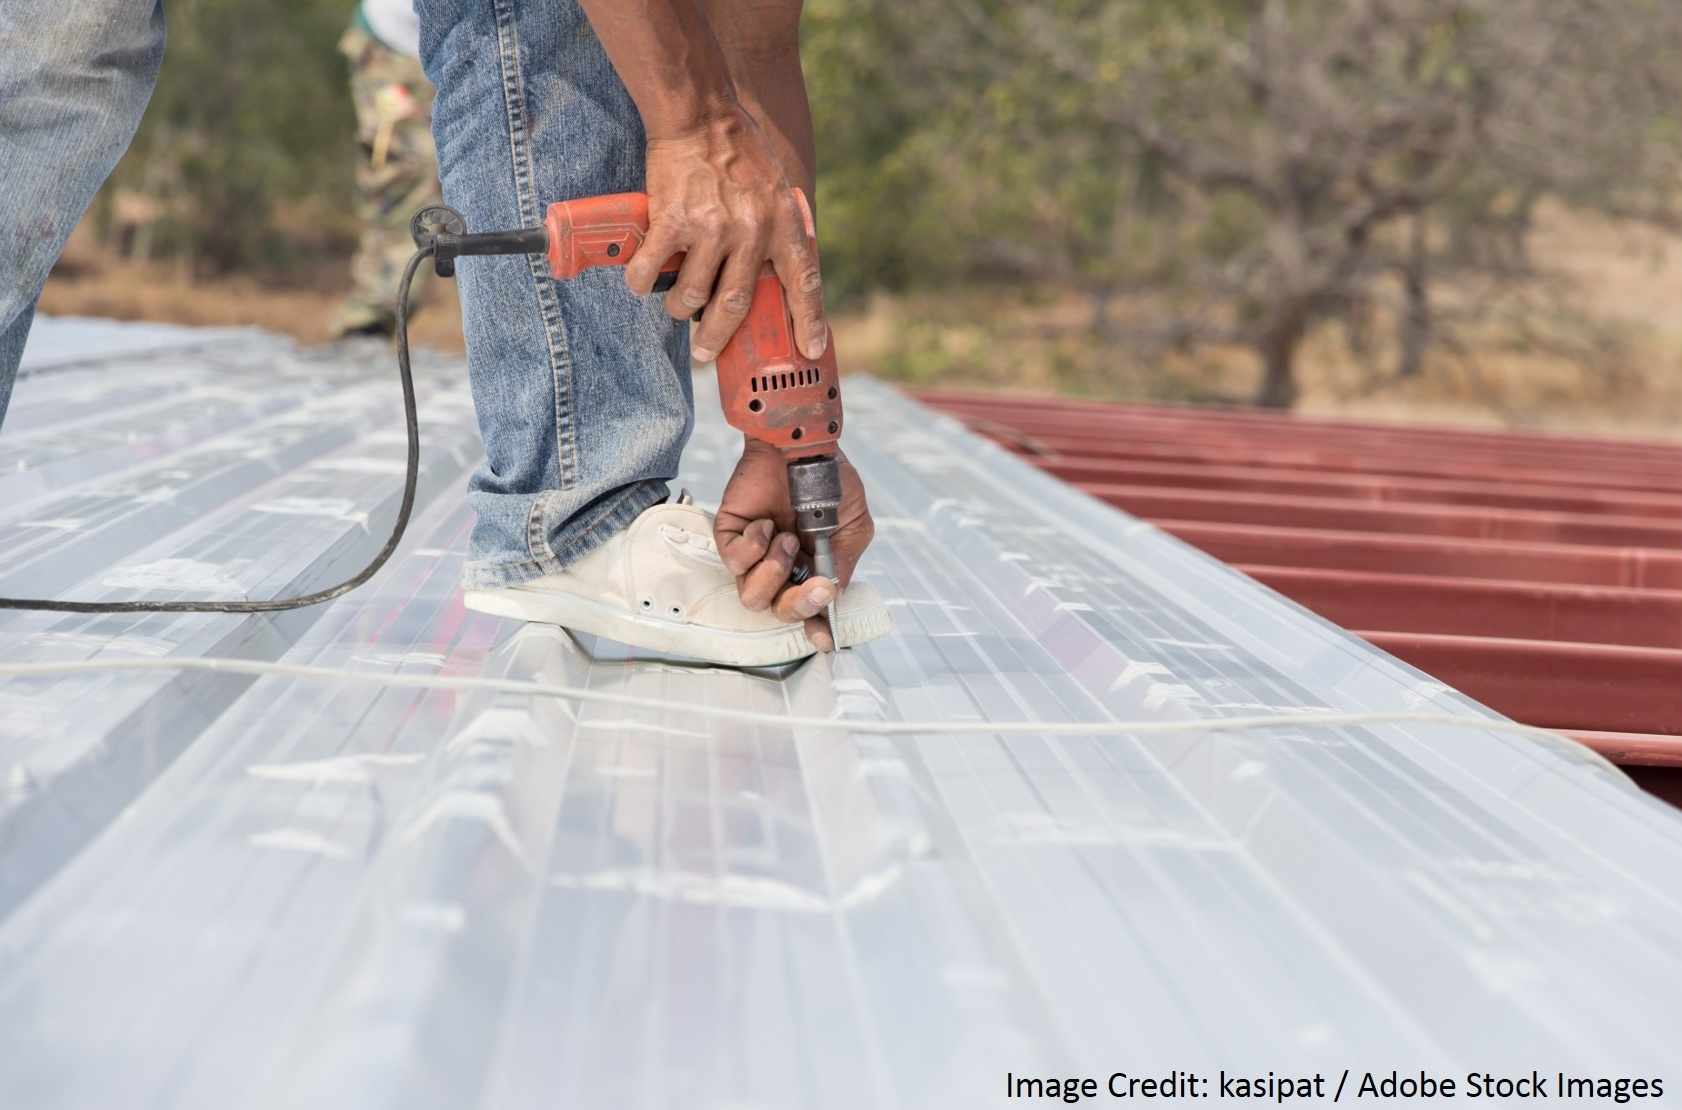 How to Properly Screw Down Metal Roofing-407792-edited.jpg